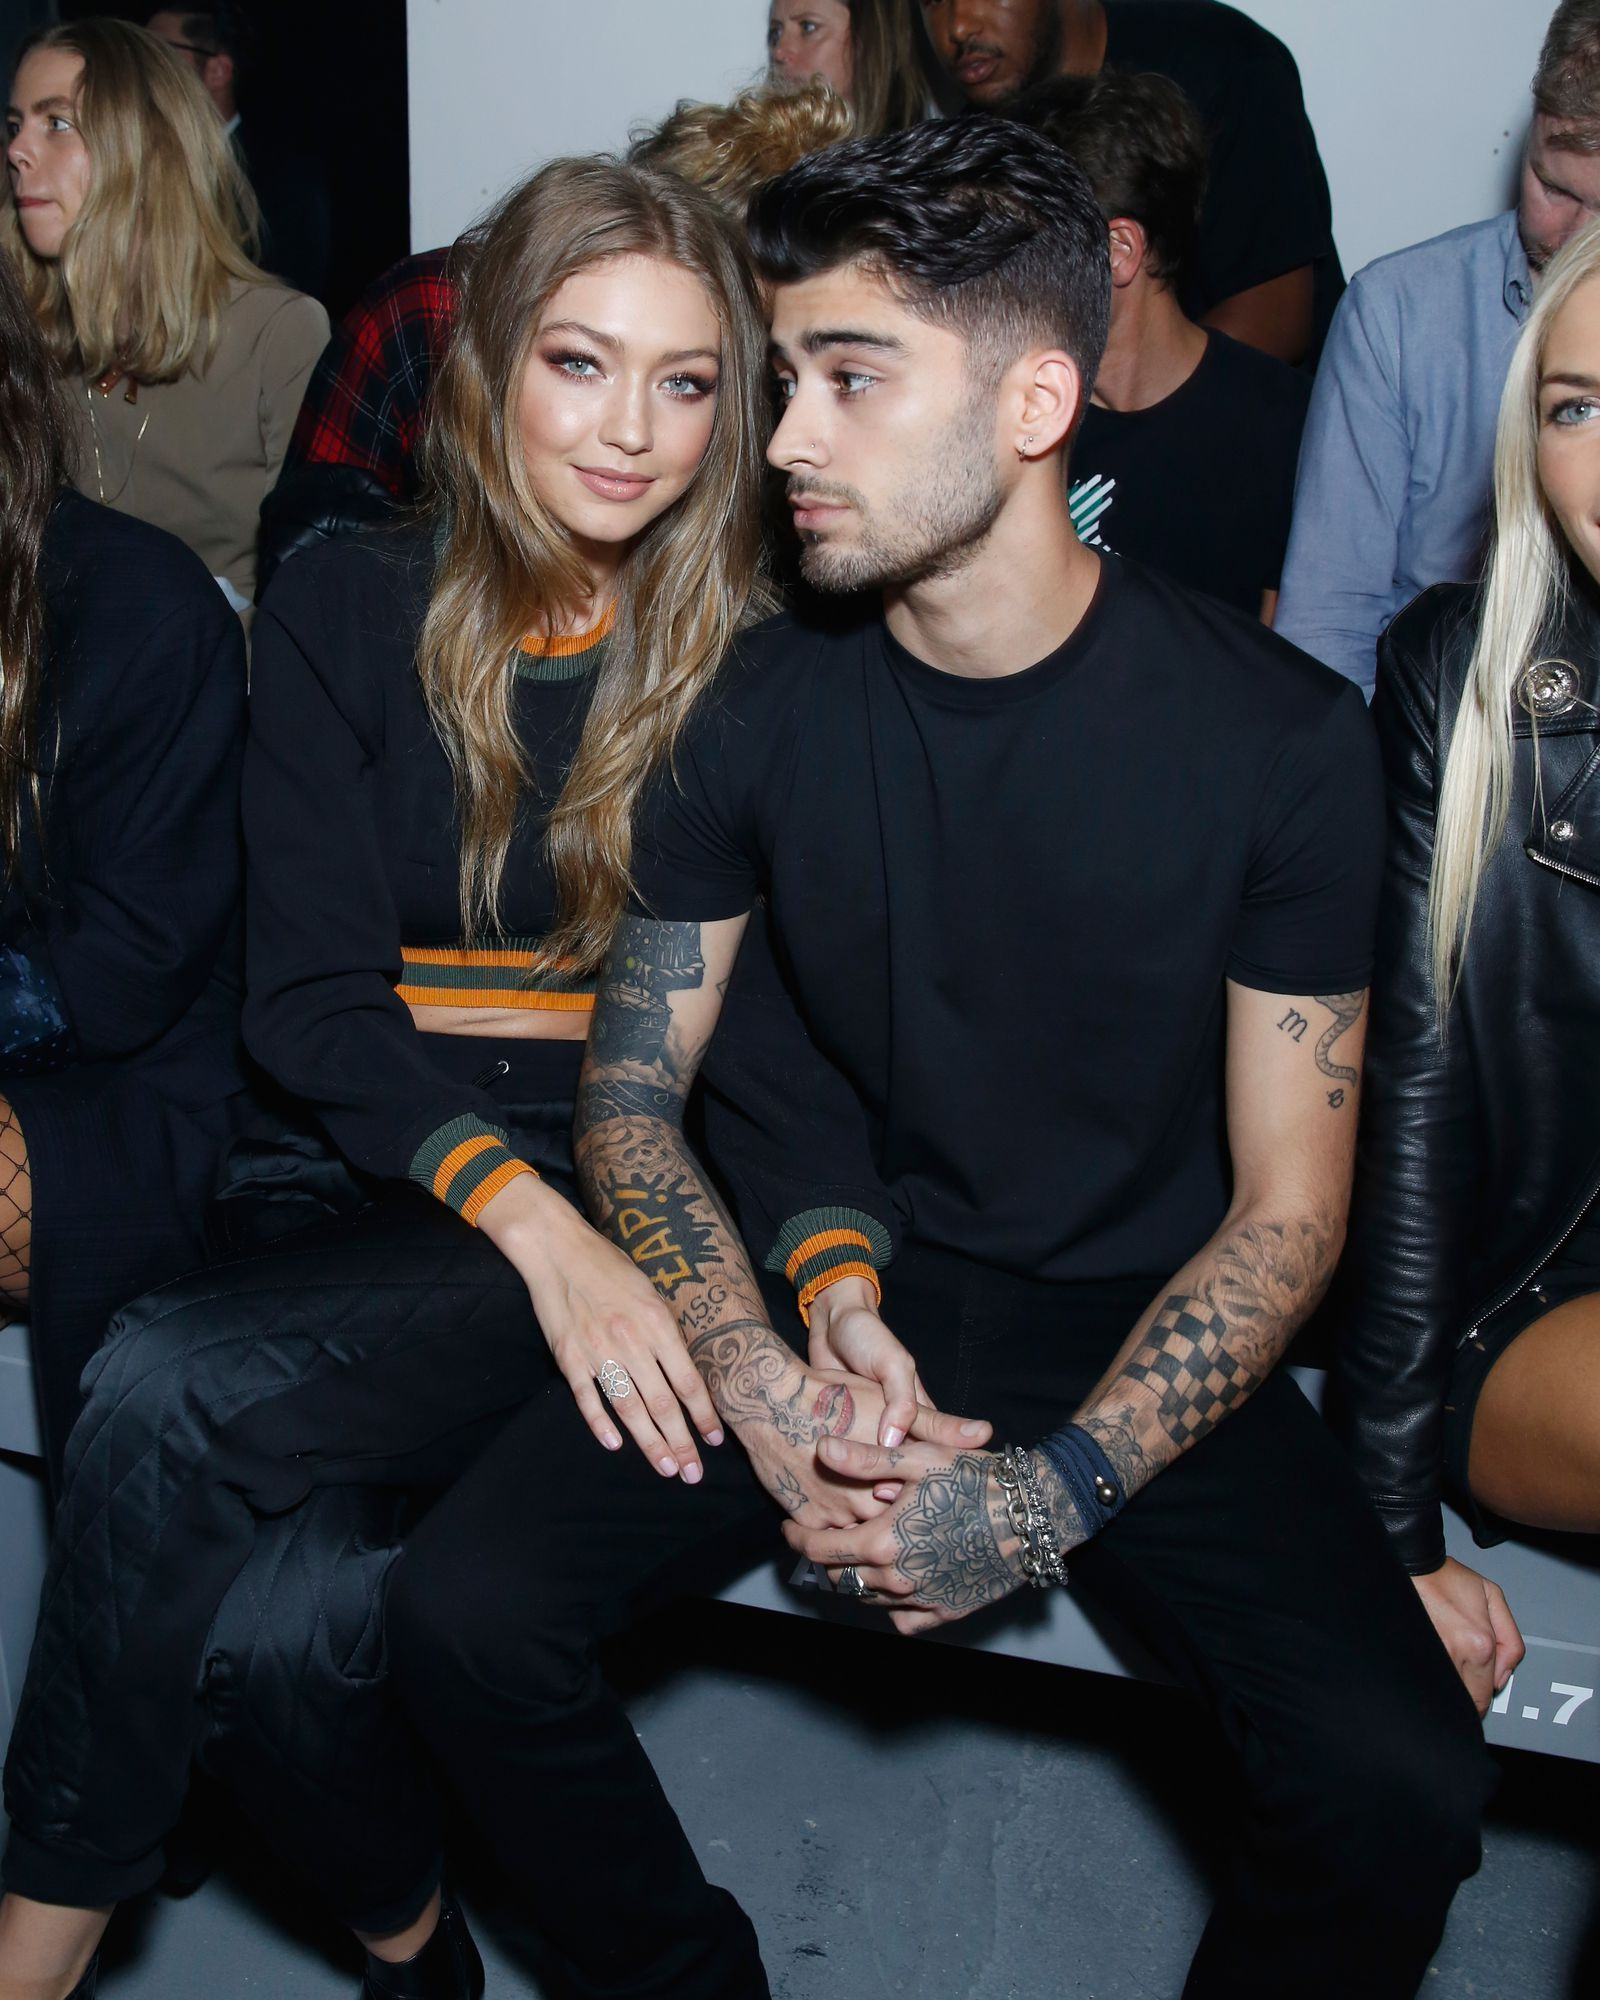 Gigi Hadid Is 'Hesitant' About Getting Back Together With Zayn Malik